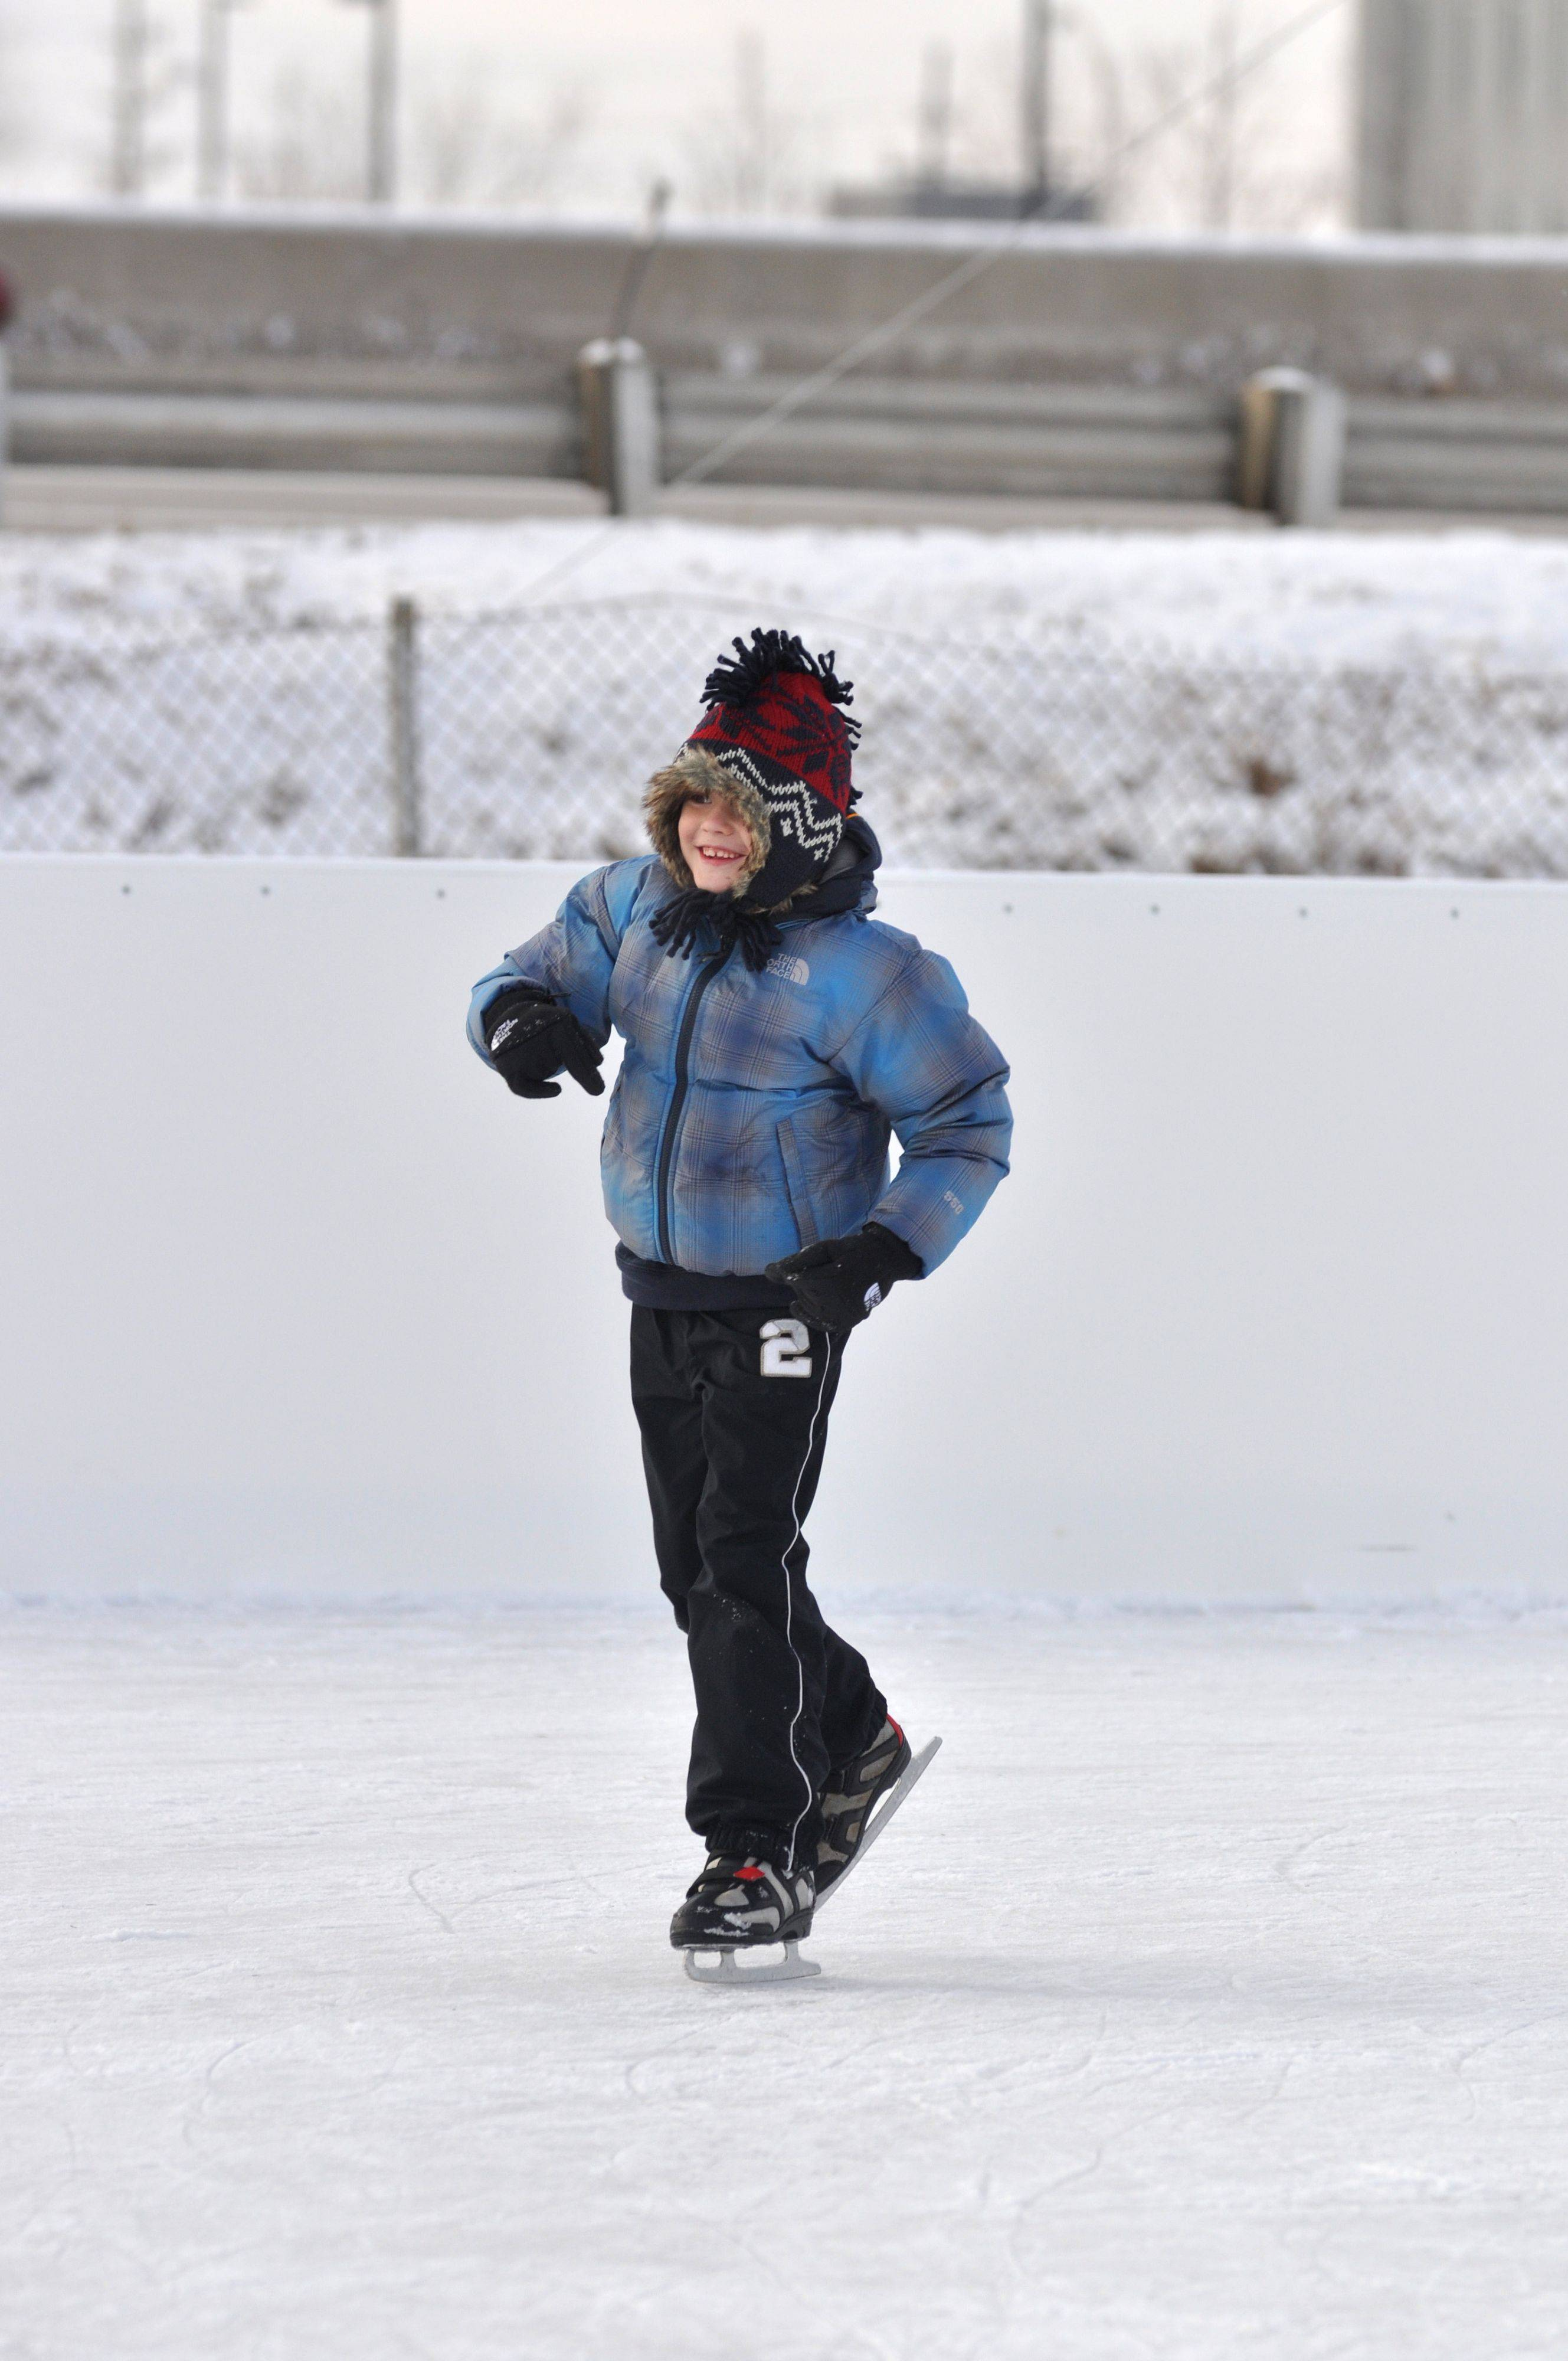 Patrick Mojsa, 7, of Norridge, smiles as he skates away from the help of his father, Marek Mojsa, at the new outdoor skating rink in Rosemont.